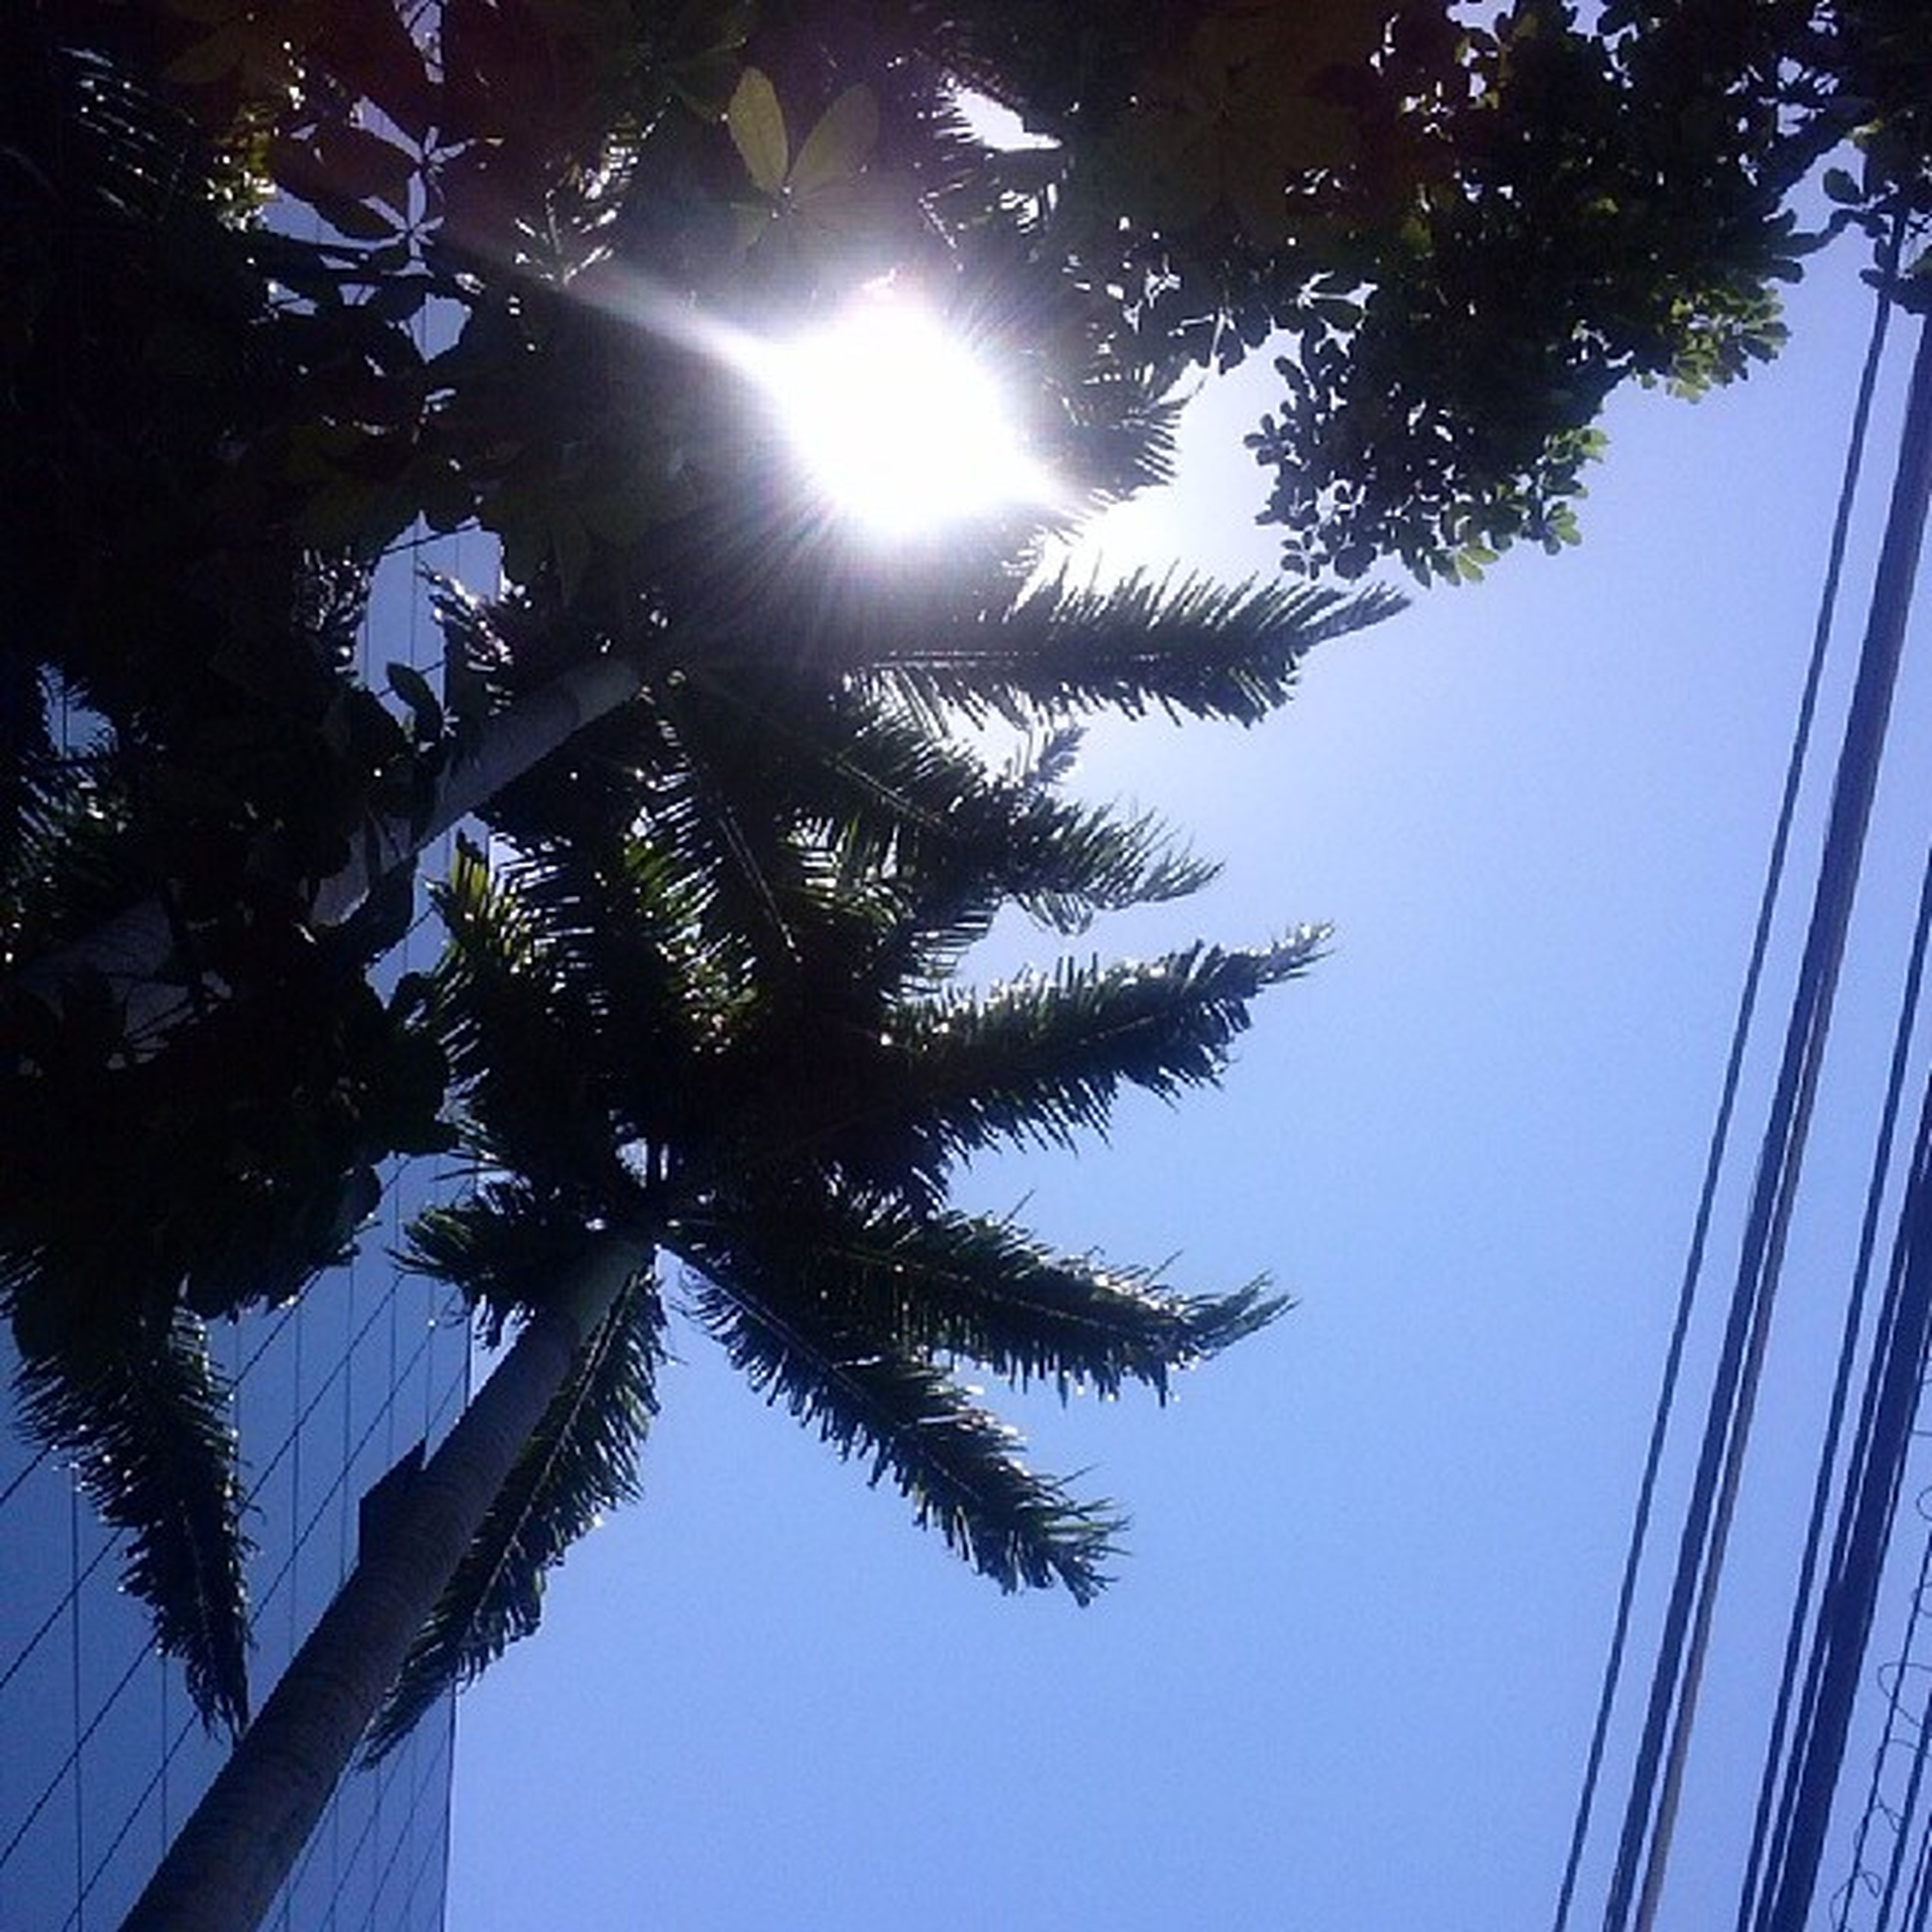 low angle view, tree, branch, clear sky, growth, sun, tranquility, nature, tree trunk, sunlight, beauty in nature, silhouette, sky, palm tree, scenics, tall - high, sunbeam, outdoors, no people, tranquil scene